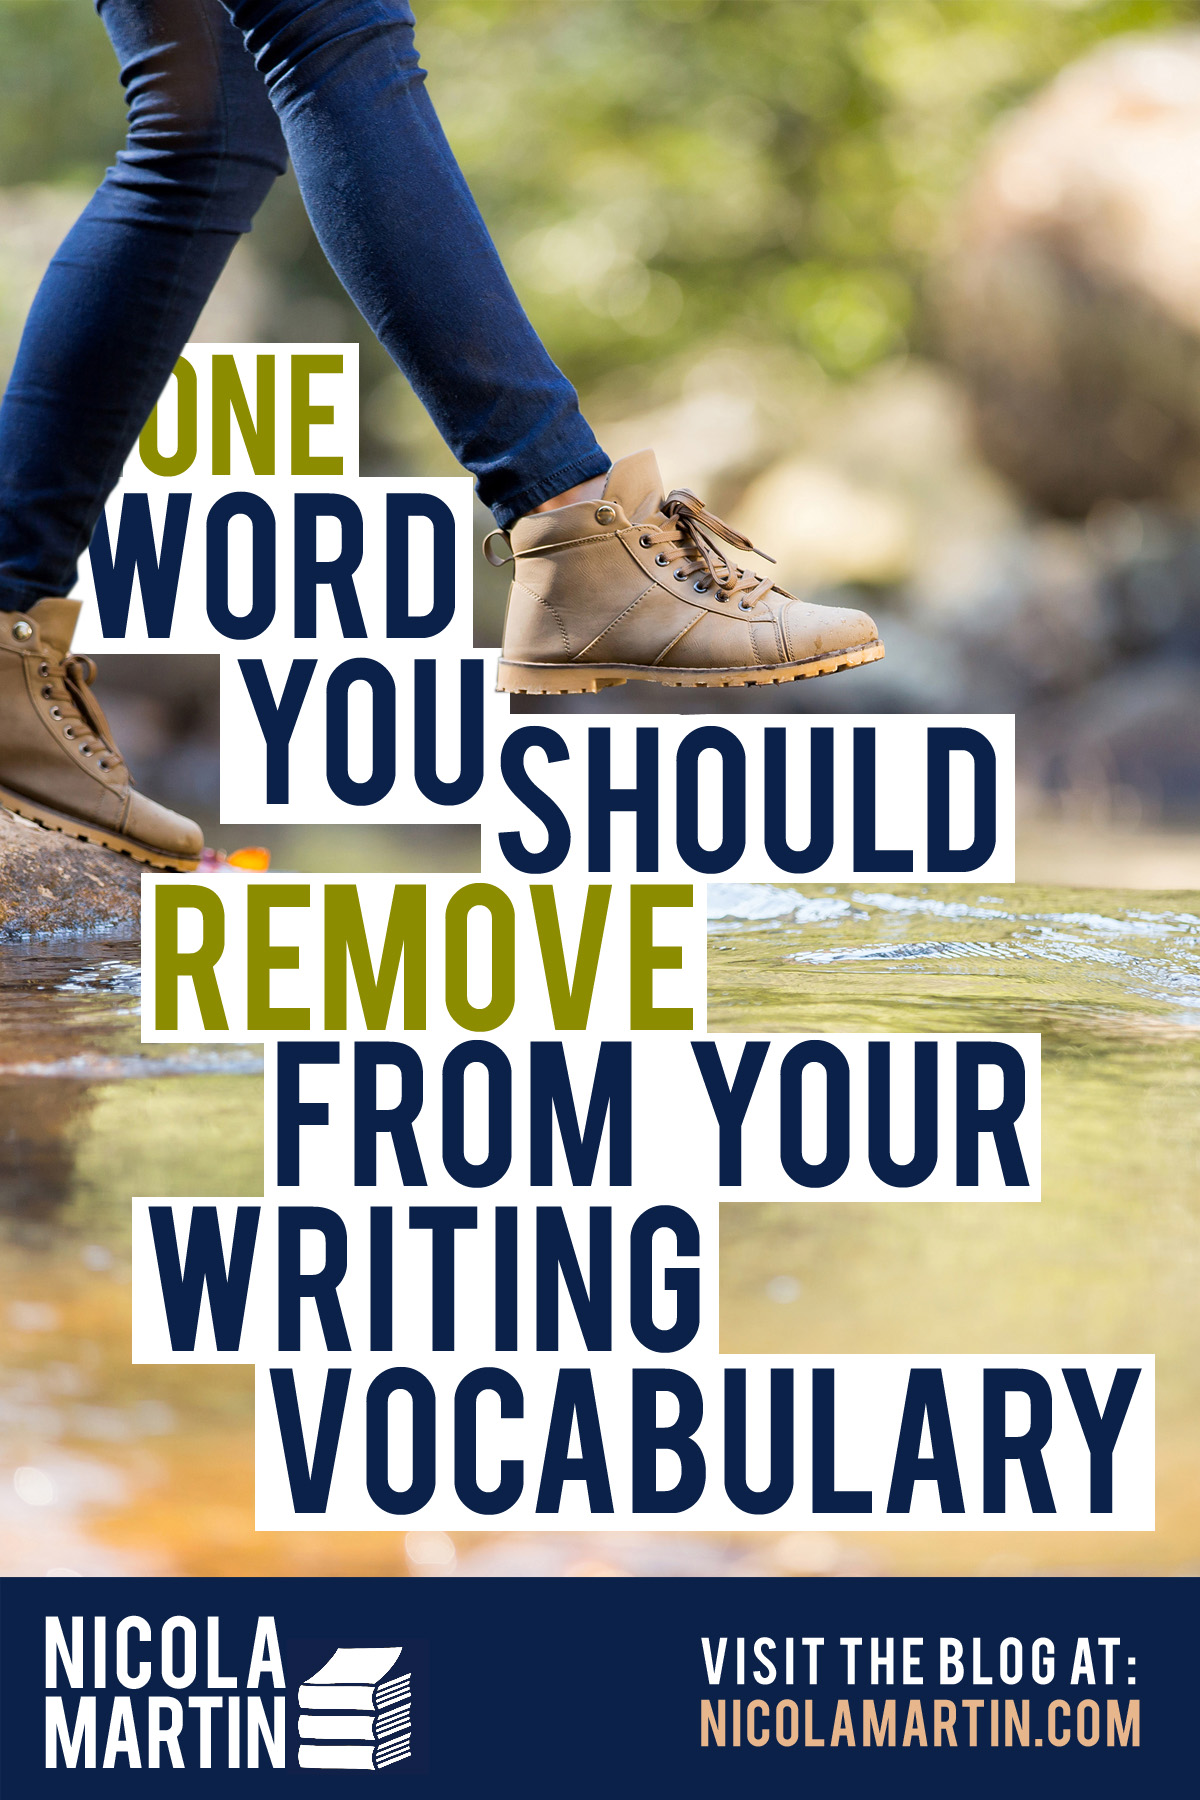 One word you should remove from your writing vocabulary